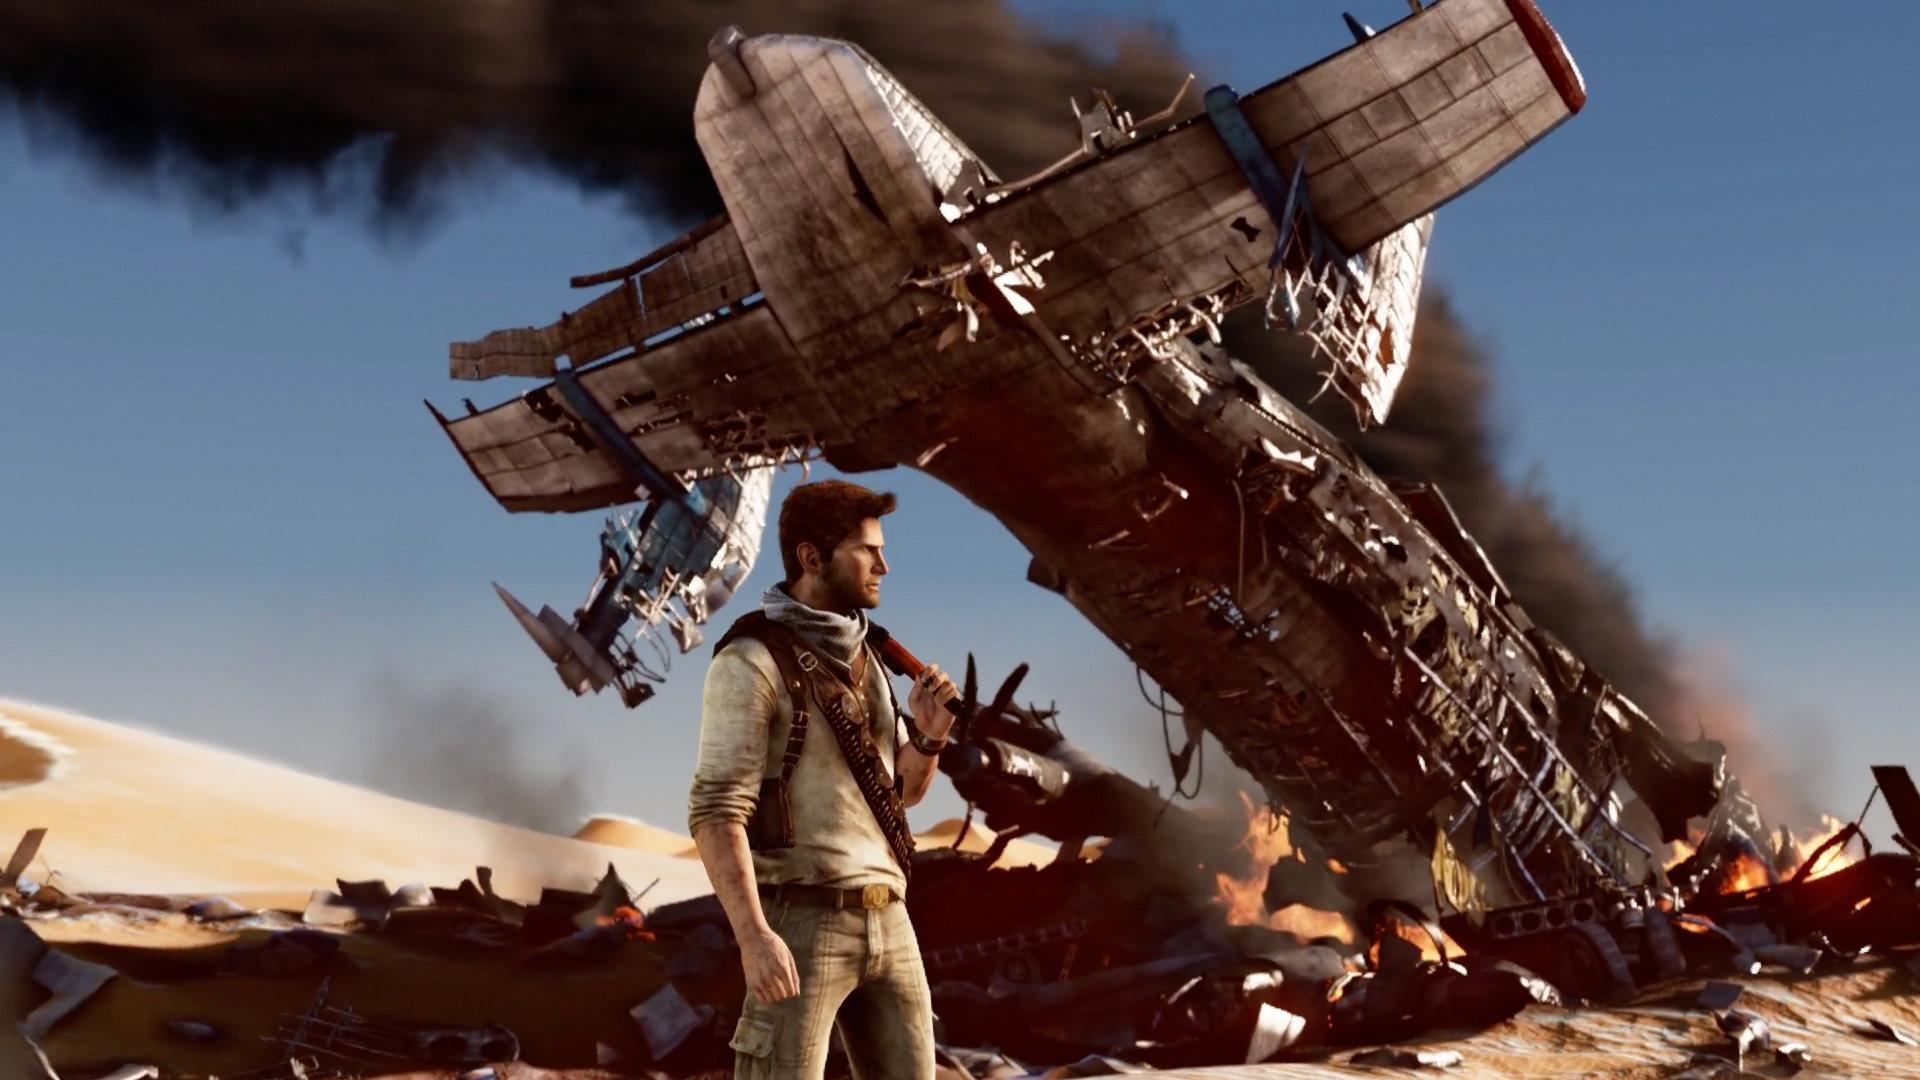 Journey And Uncharted Remasters Will Be Free On Ps4 No Ps Plus